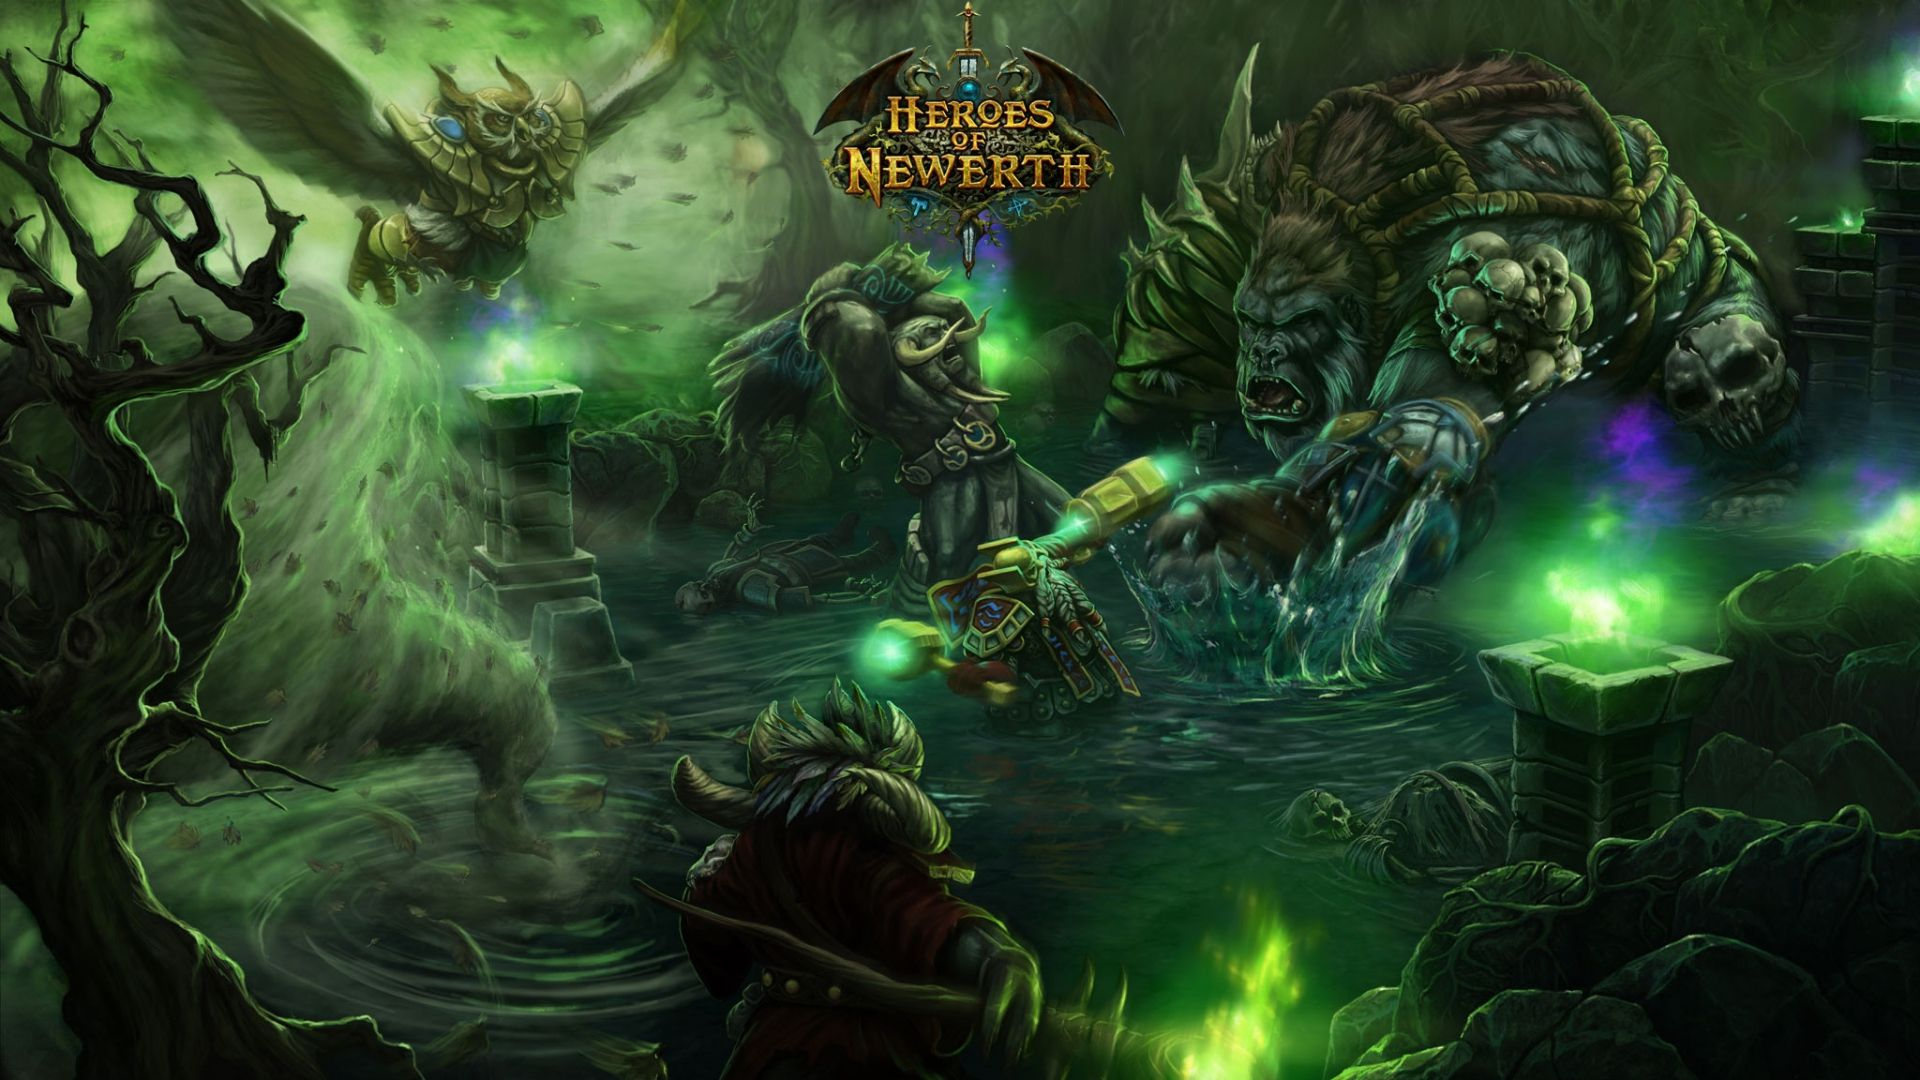 world of warcraft, heroes of newerth, characters http